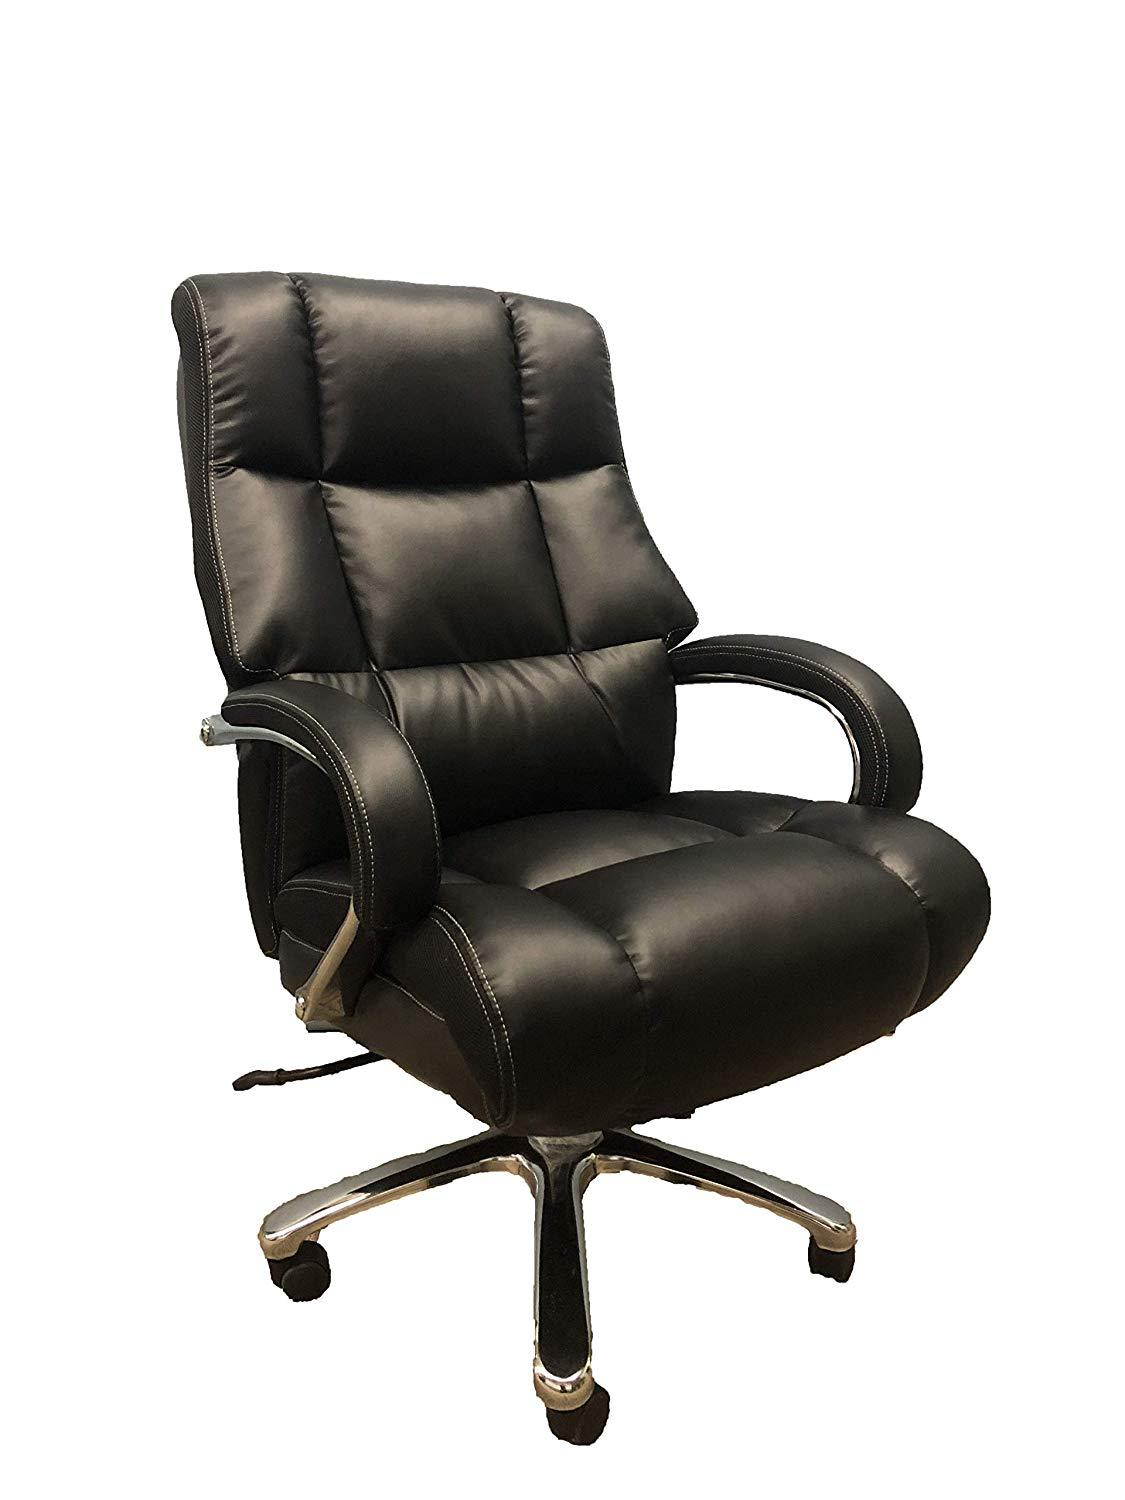 Big And Tall Black Comfort Executive Office Chair With Extra Thick Padded Chrome Arms Comfy Chairs Chair Office Chair